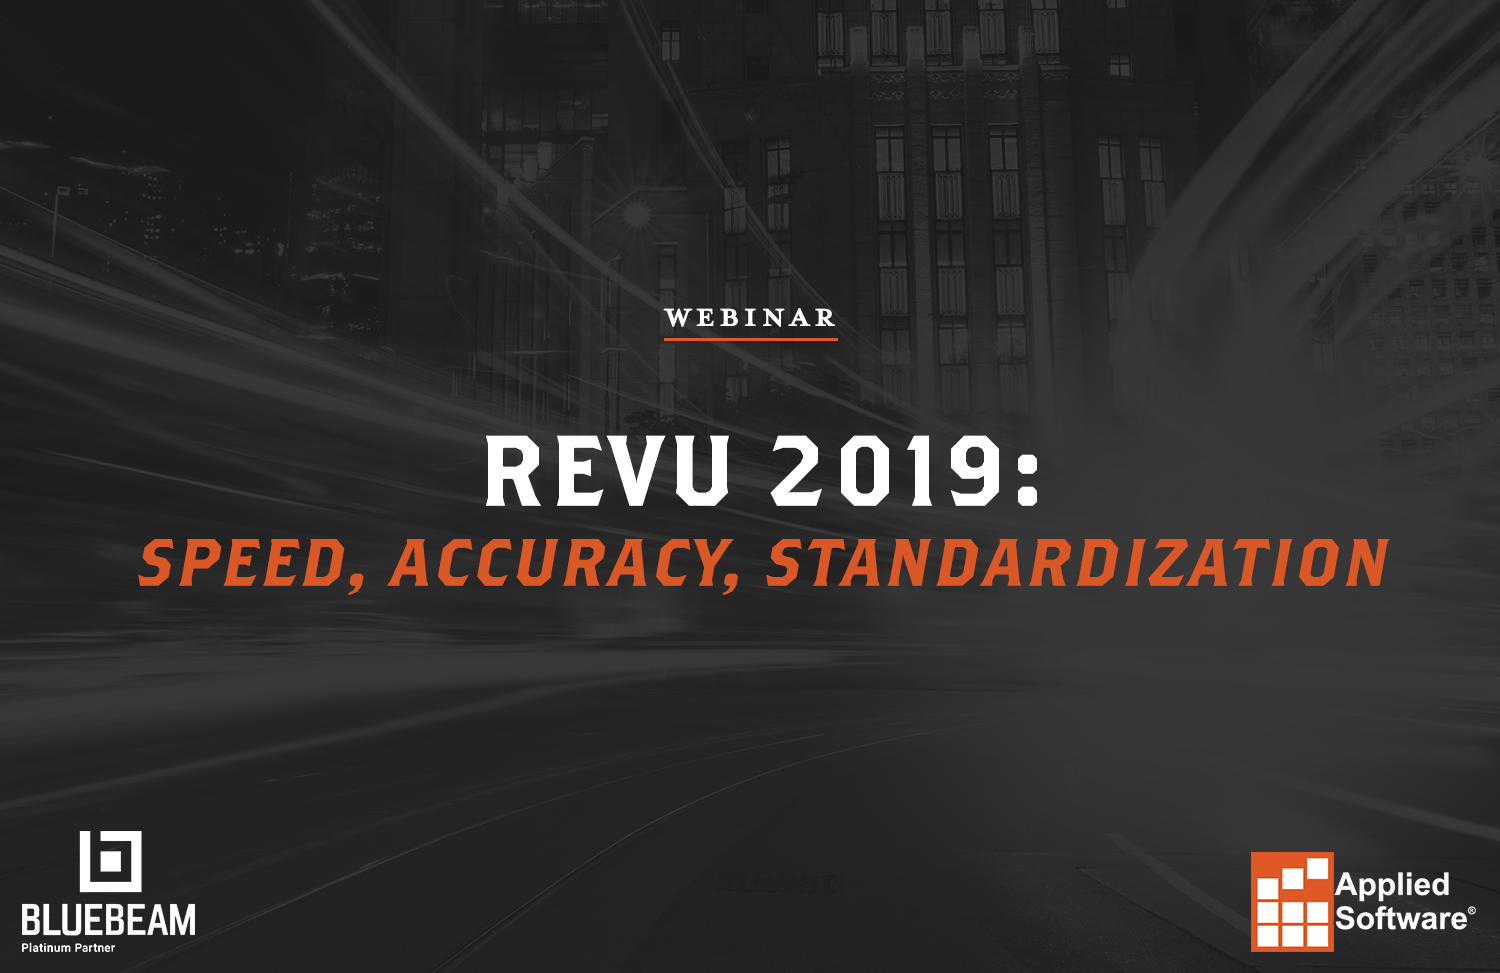 Revu 2019 Speed, Accuracy, Standardization-2